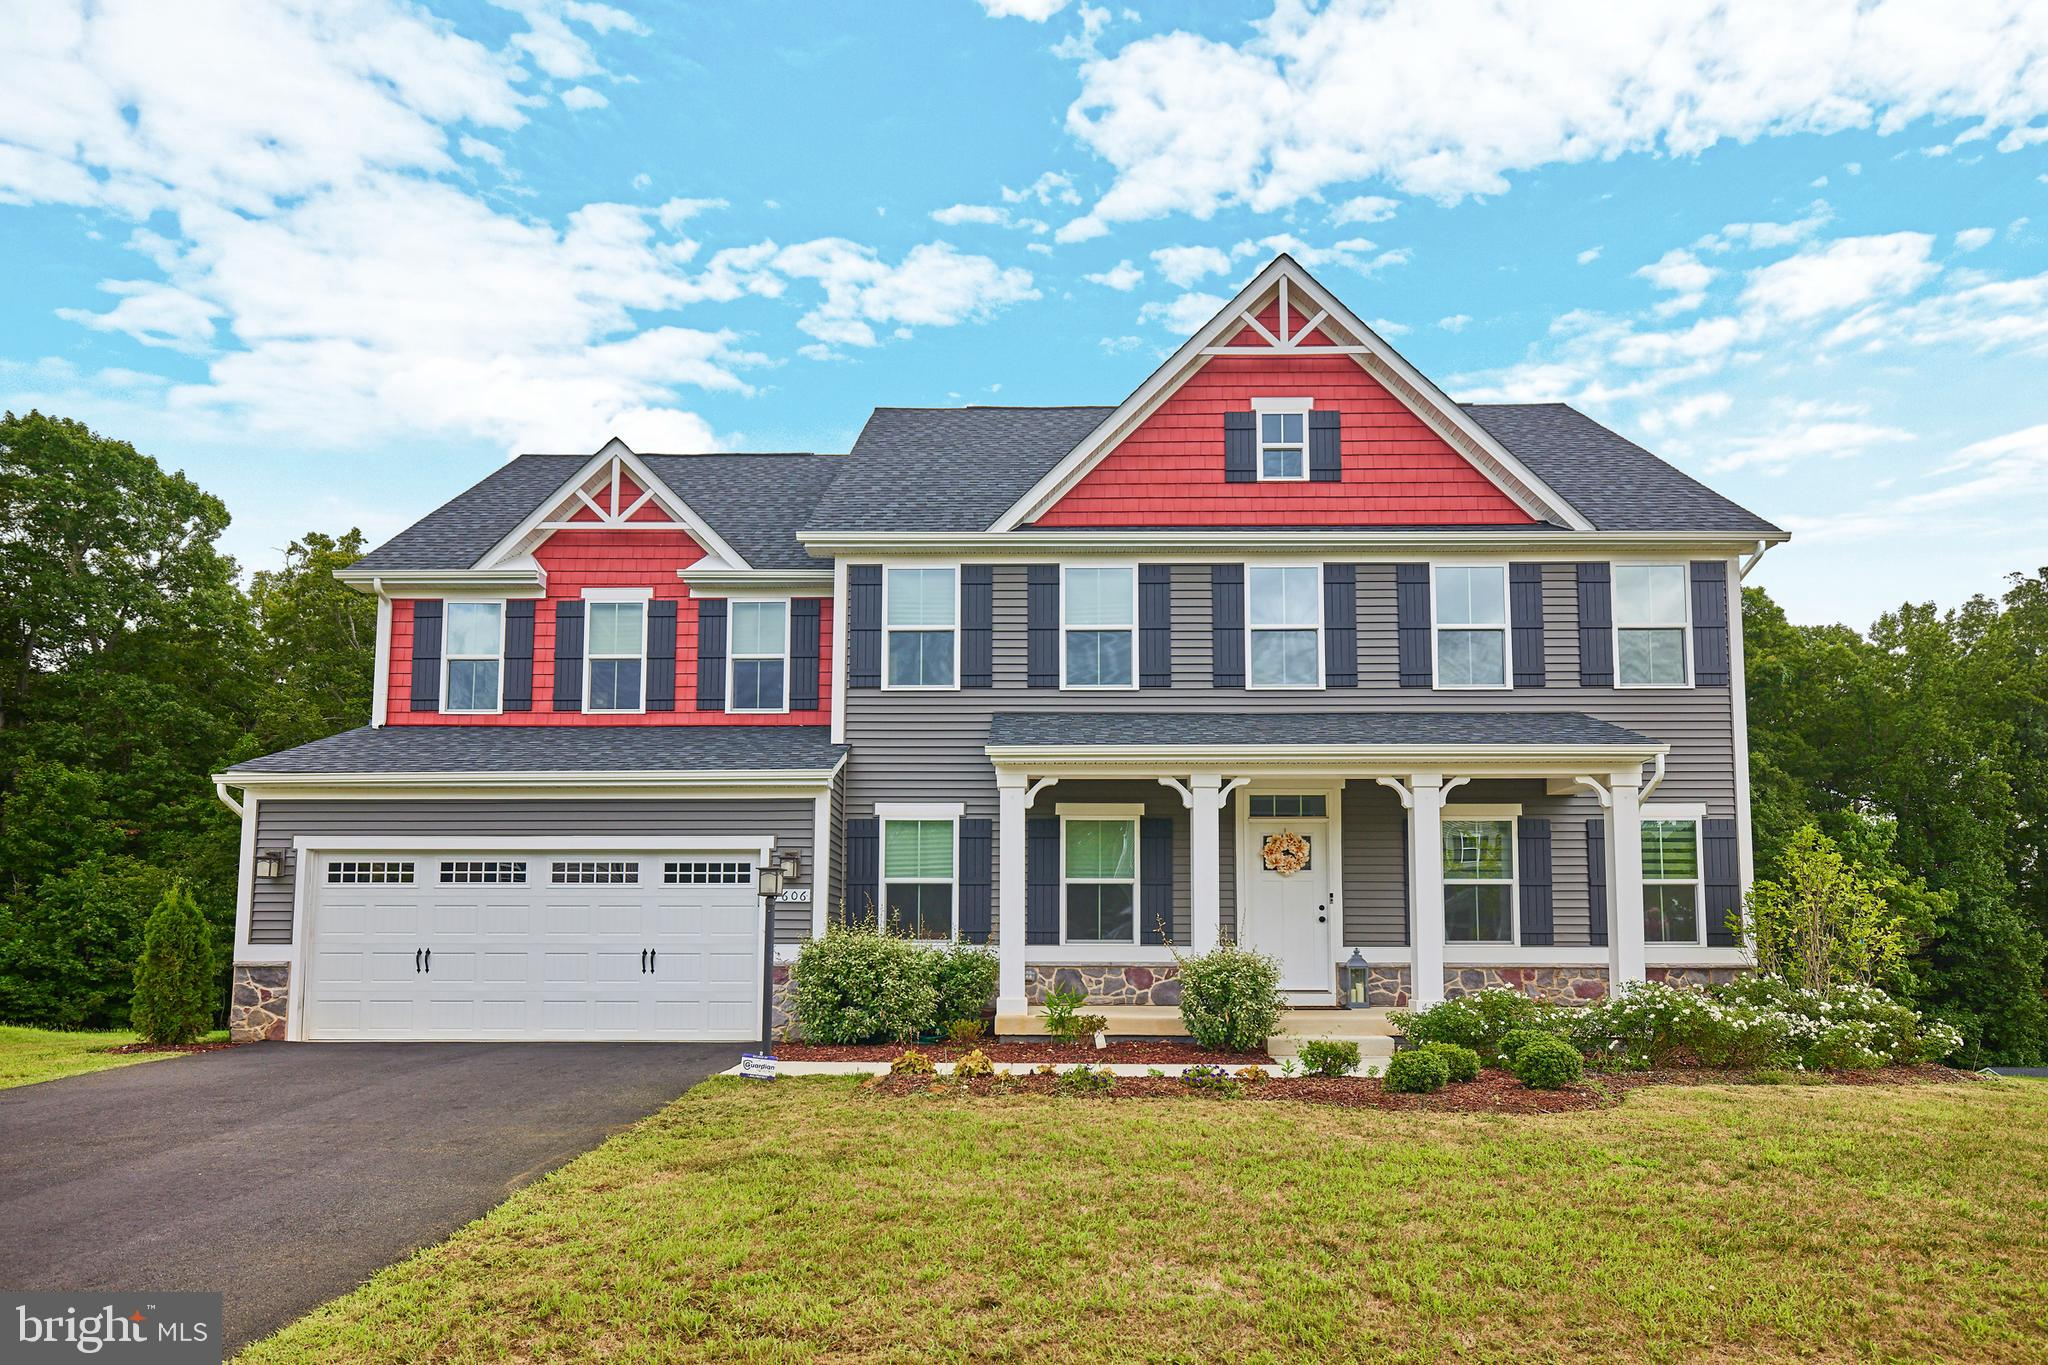 Why wait for new construction?! This gorgeous 2019-built, 4,700 SF home with 5/6 bedrooms (including one on the main level with its own bath) is in the highly-desired neighborhood of The Crossings of Chancellorsville and is located in the Chancellor Elementary (a Blue Ribbon School) and Riverbend HS pyramid. Upon arriving at this premium cul-de-sac lot location, the lighted front porch welcomes you as you can take in the curb appeal of this stunningly built Normandy model by Ryan Homes. As you enter, the first thing that will draw you is the openness of this floorplan.  The main level features  a dedicated office space with glass french doors, large dining room, in-law suite, mud room, and a gourmet kitchen with breakfast area suited for the entire family to gather.  The gourmet kitchen offers a gas cooktop, double oven, stainless steel appliances, and upgraded cabinets with granite countertops. The massive island, with seating for 4, overlooks the expansive light-filled family room that boasts a gas fireplace that will make your jaw drop--truly the perfect floorplan to entertain with enough space for everyone to be together while overlooking the .75 acre backyard that would be perfect for an in-ground pool.  When it's time to retreat for the evening, the open staircase has oak floors and is flooded with natural light as it leads you upstairs where you will find ANOTHER living area.  The generously sized owner's suite is tranquil with its lighted tray ceiling, two large walk-in closets, and a private bath with a soaker tub and separate shower!  Additionally, on this level, you will find 3 more generously sized bedrooms also with walk-in closets (one bedroom with it's own en-suite bathroom), a hall bath, and laundry room. The large recreation room in the walk-out basement offers tons of potential! Mostly finished with a full bath, accompanied by a massive unfinished media room and bedroom currently being used for storage, there is plenty of space for guests, a playro